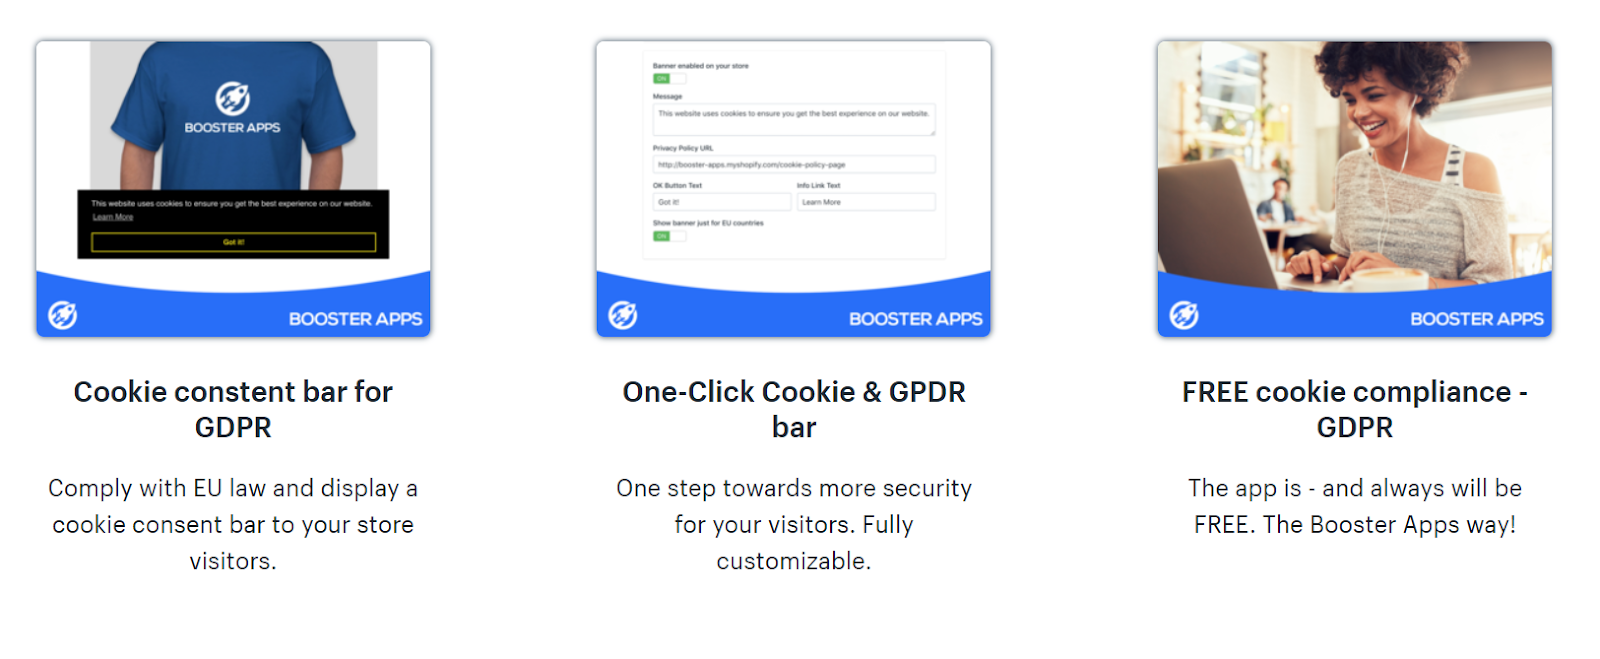 Compliant with free GDPR cookies